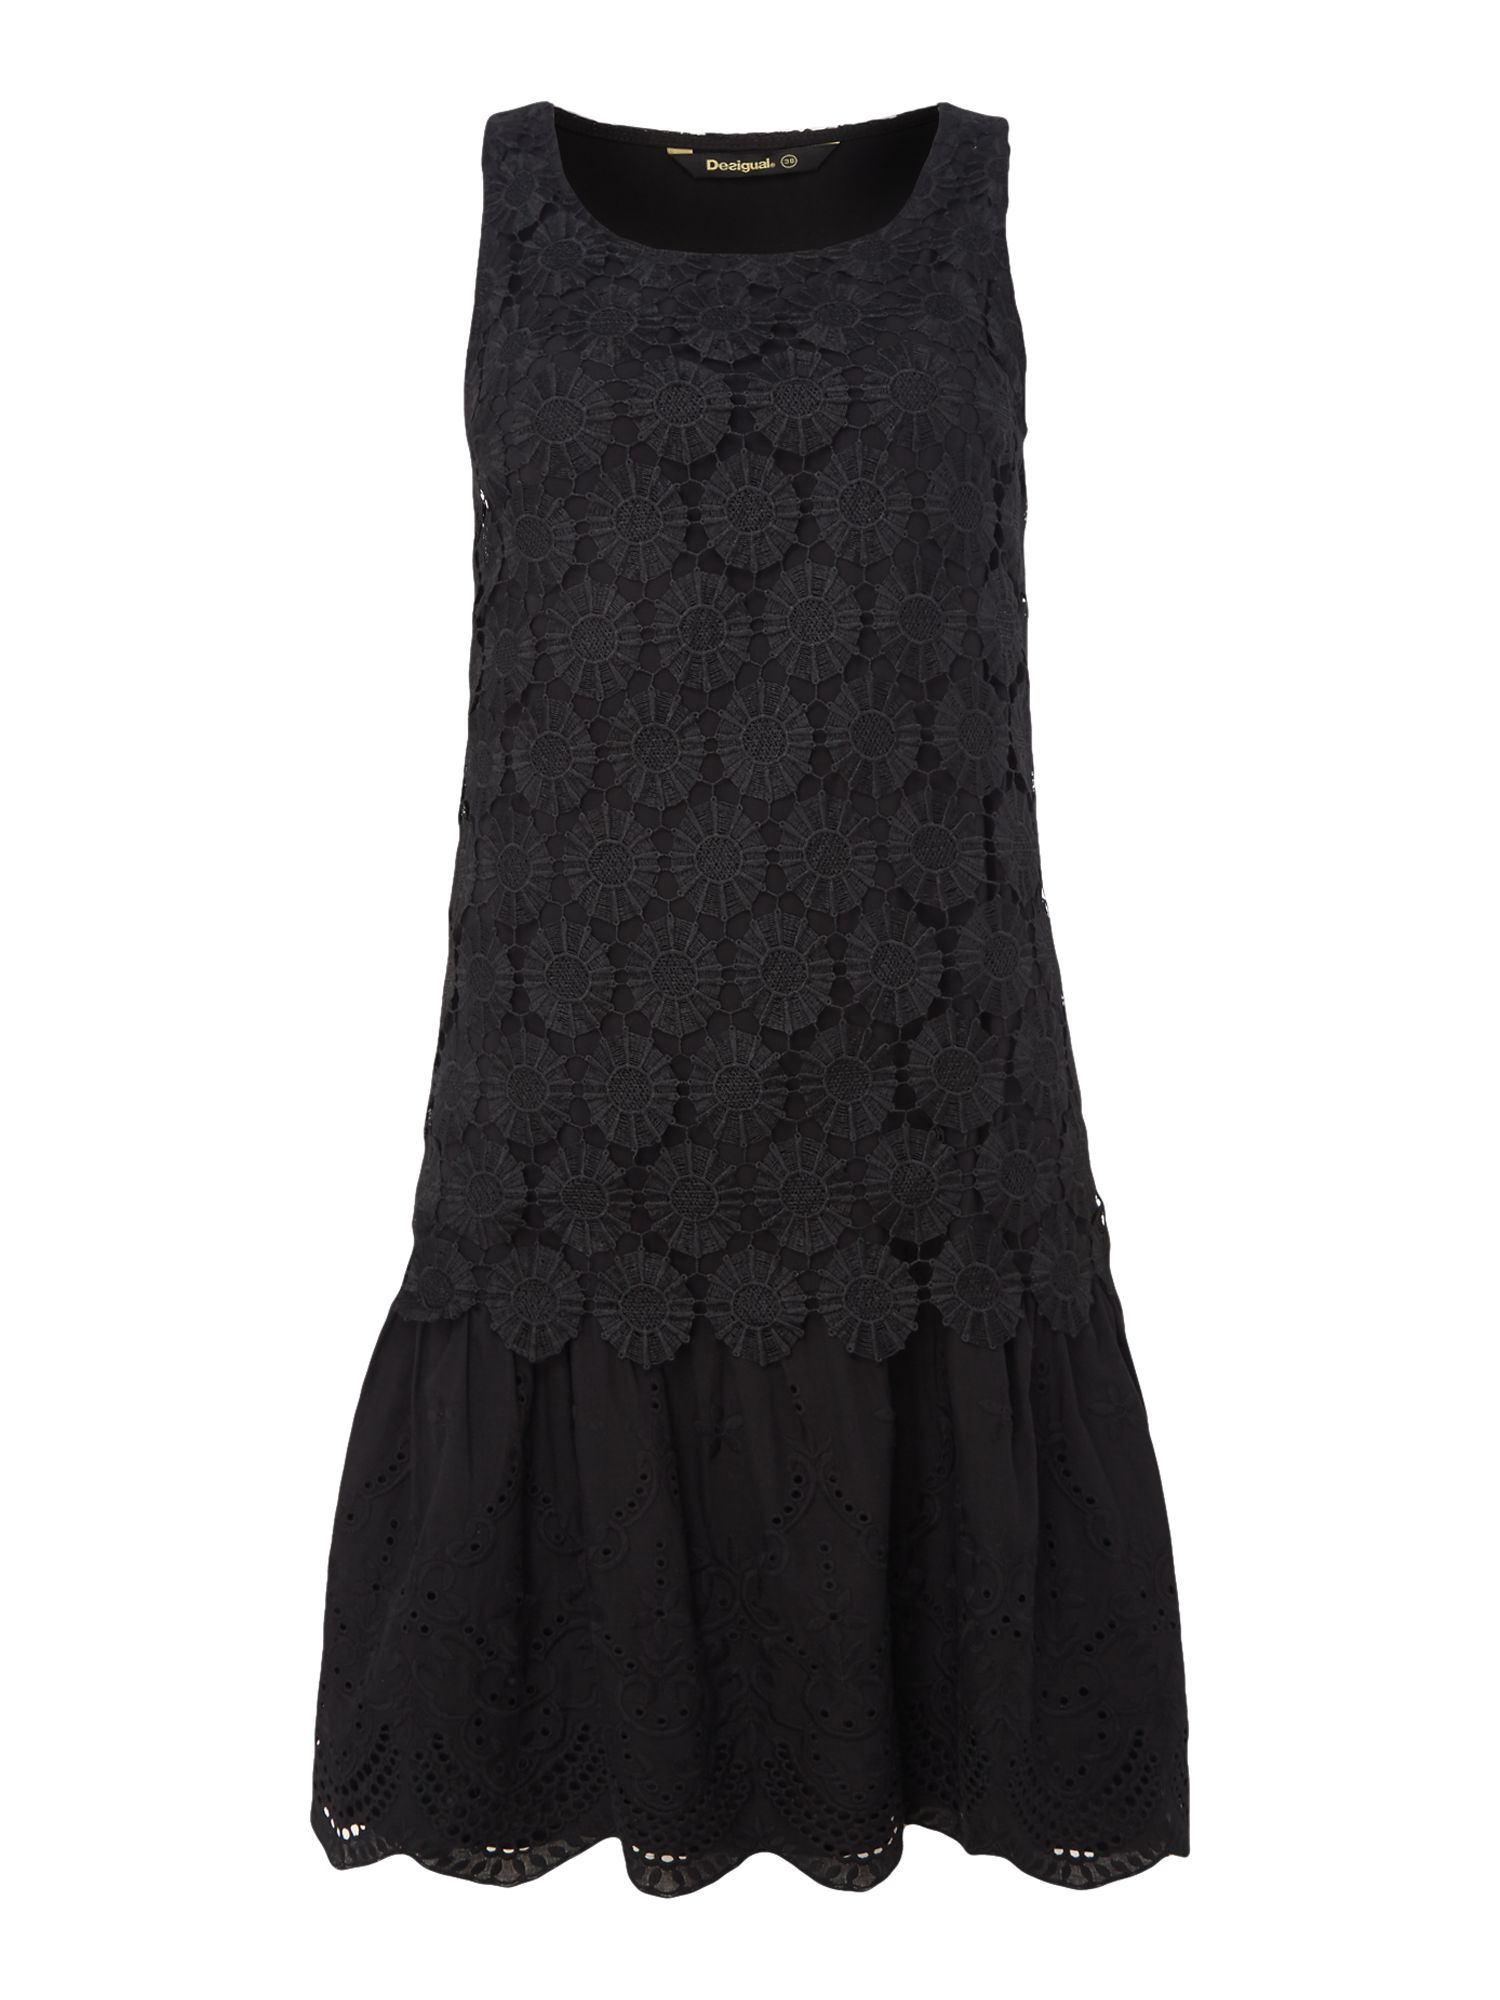 Desigual Dress Barcelona, Black